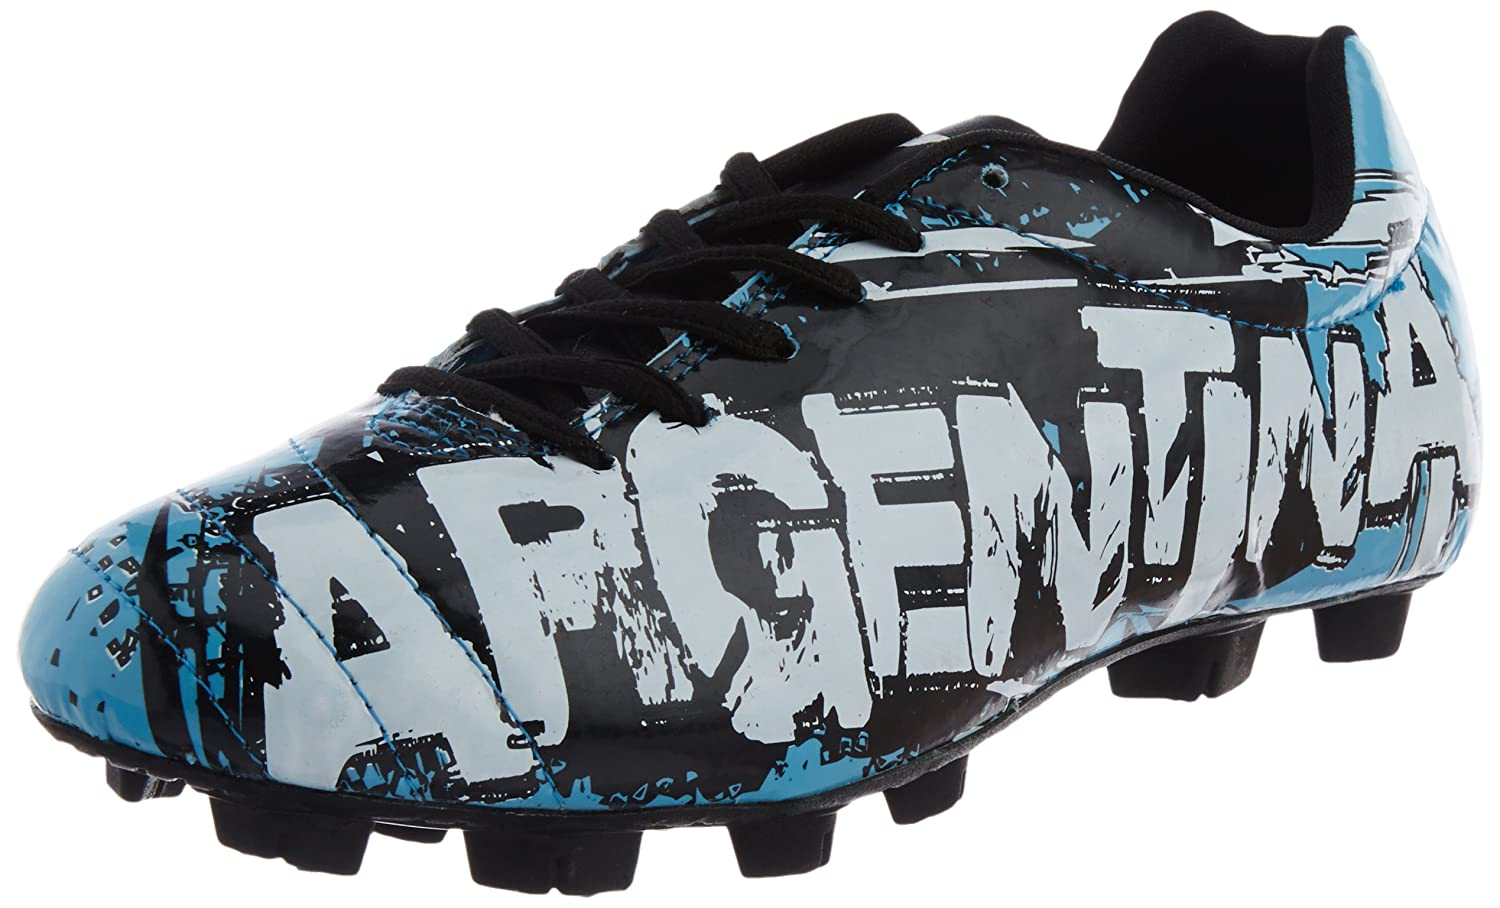 Buy Football Shoes Online at Amazon starting at Rs 649